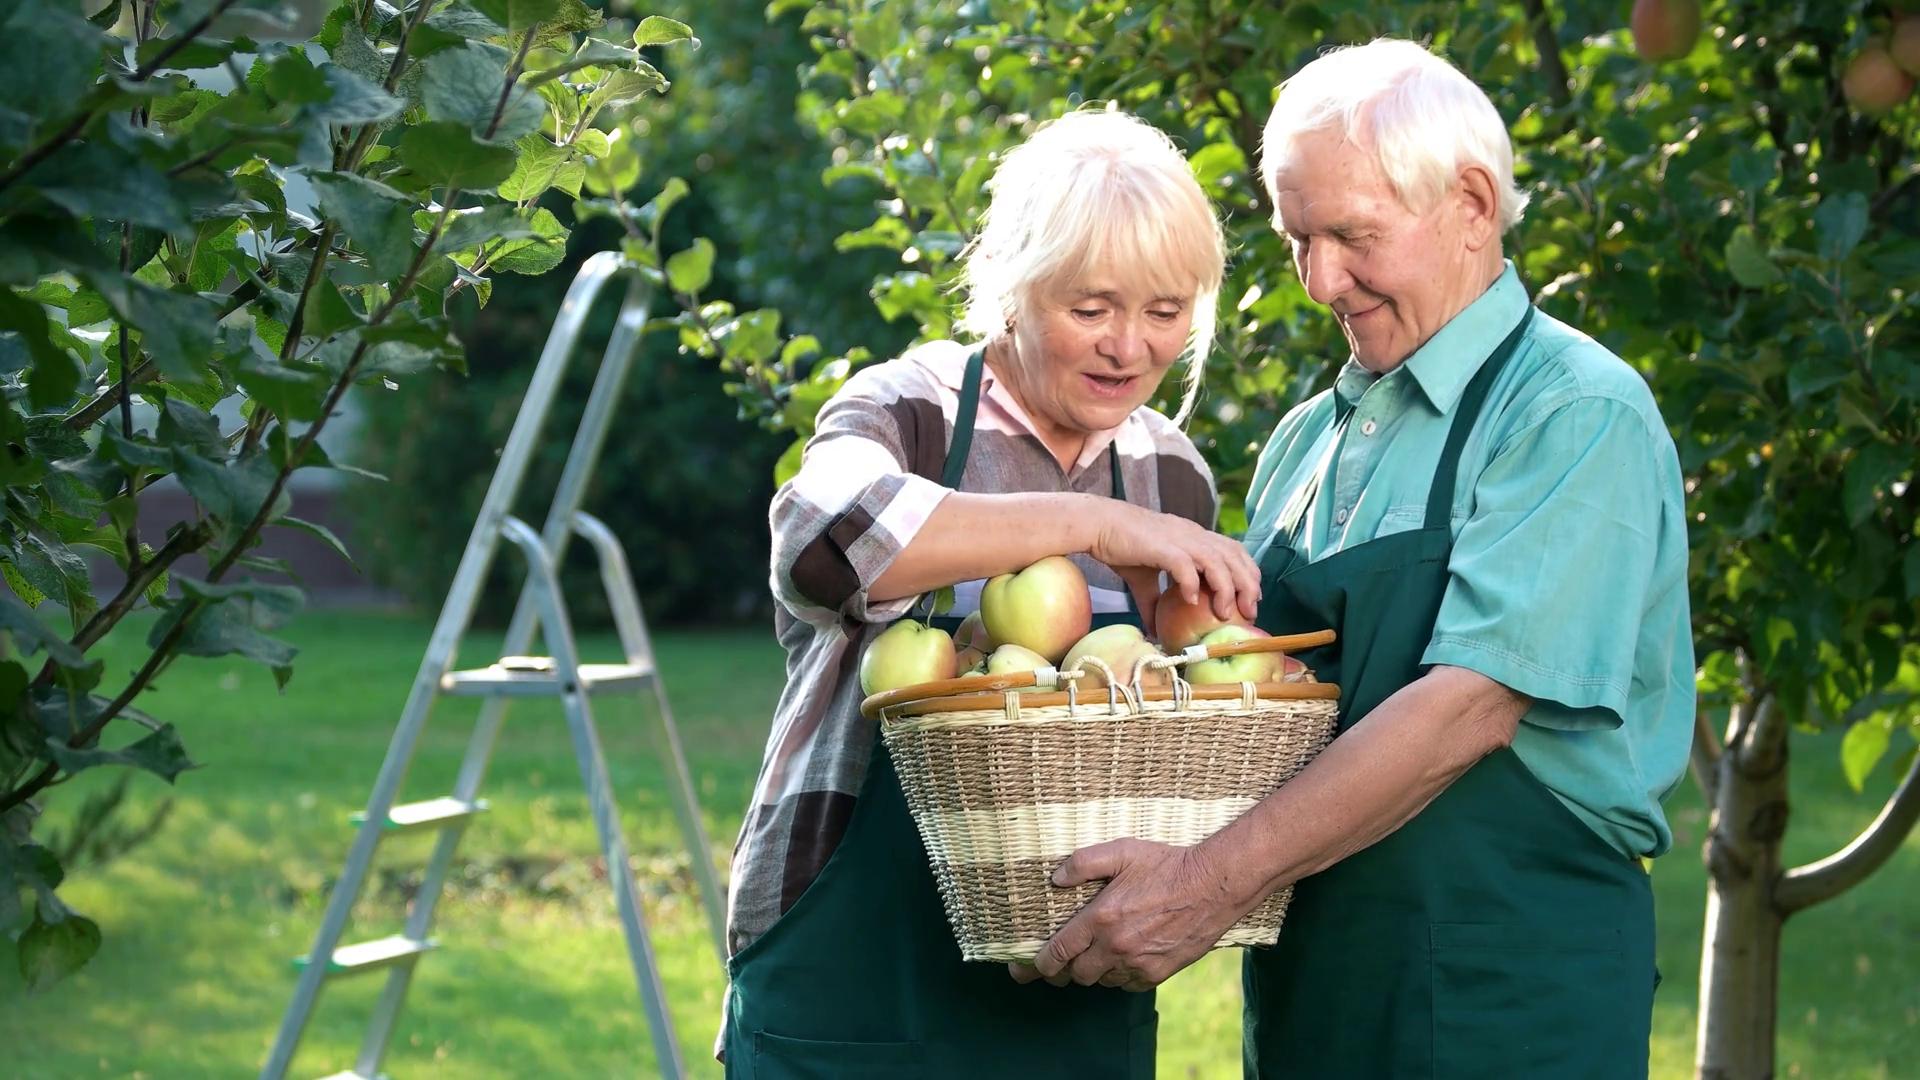 videoblocks-elderly-couple-holding-apple-basket-happy-woman-and-man-outdoors-how-to-grow-fruits_sdoyygptl_thumbnail-full01